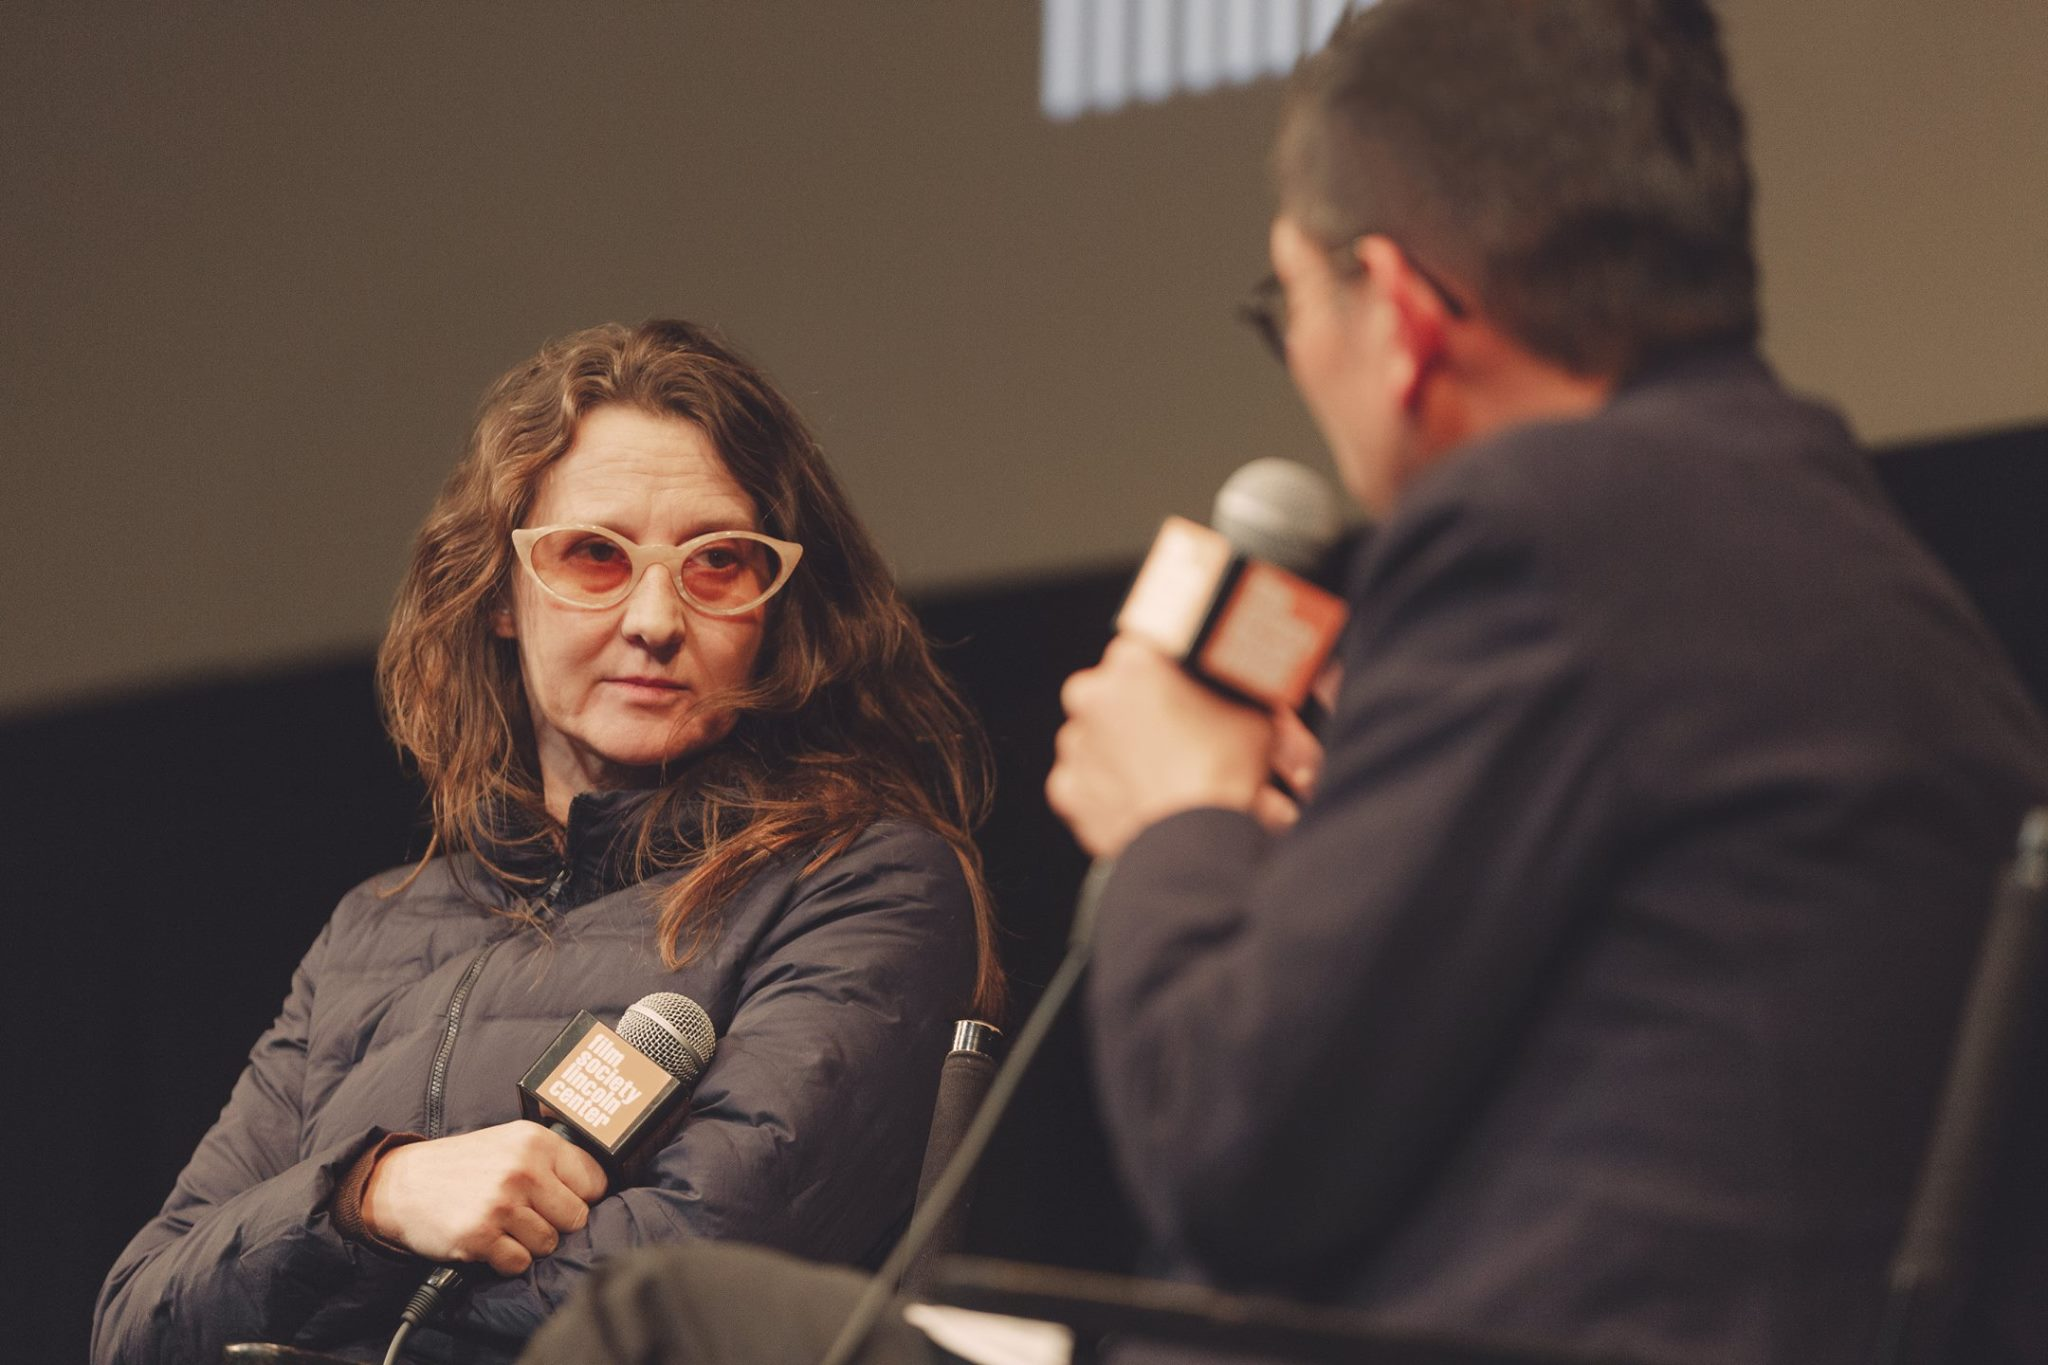 Lucrecia Martel with Dennis Lim, director of programming at the Film Society of Lincoln Center. Photography by Arin Sang-urai,Film Society of Lincoln Center.